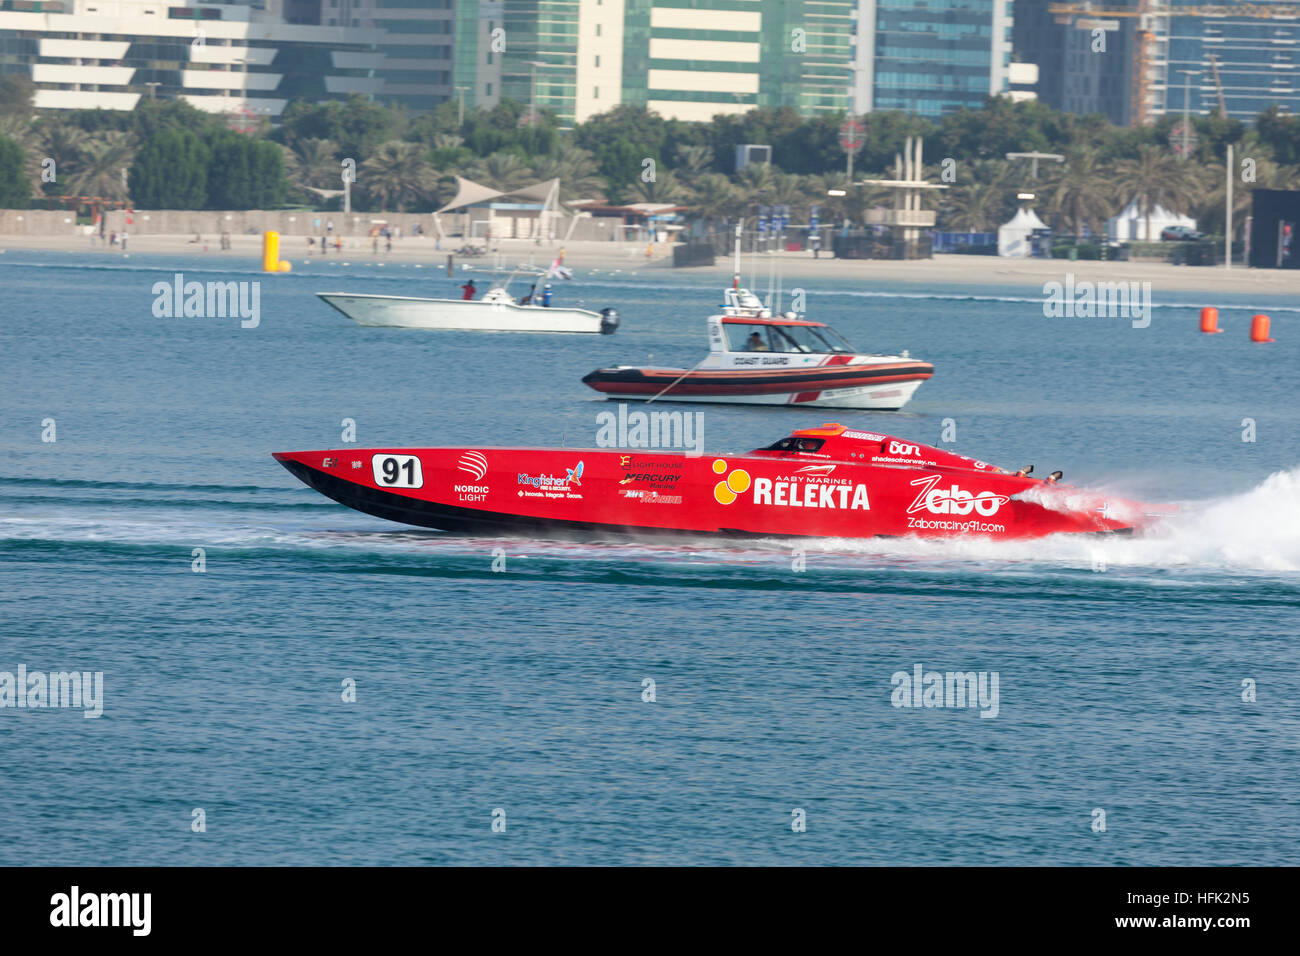 Red racing boat at the Powerboat Championship 2016 in Abu Dhabi - Stock Image